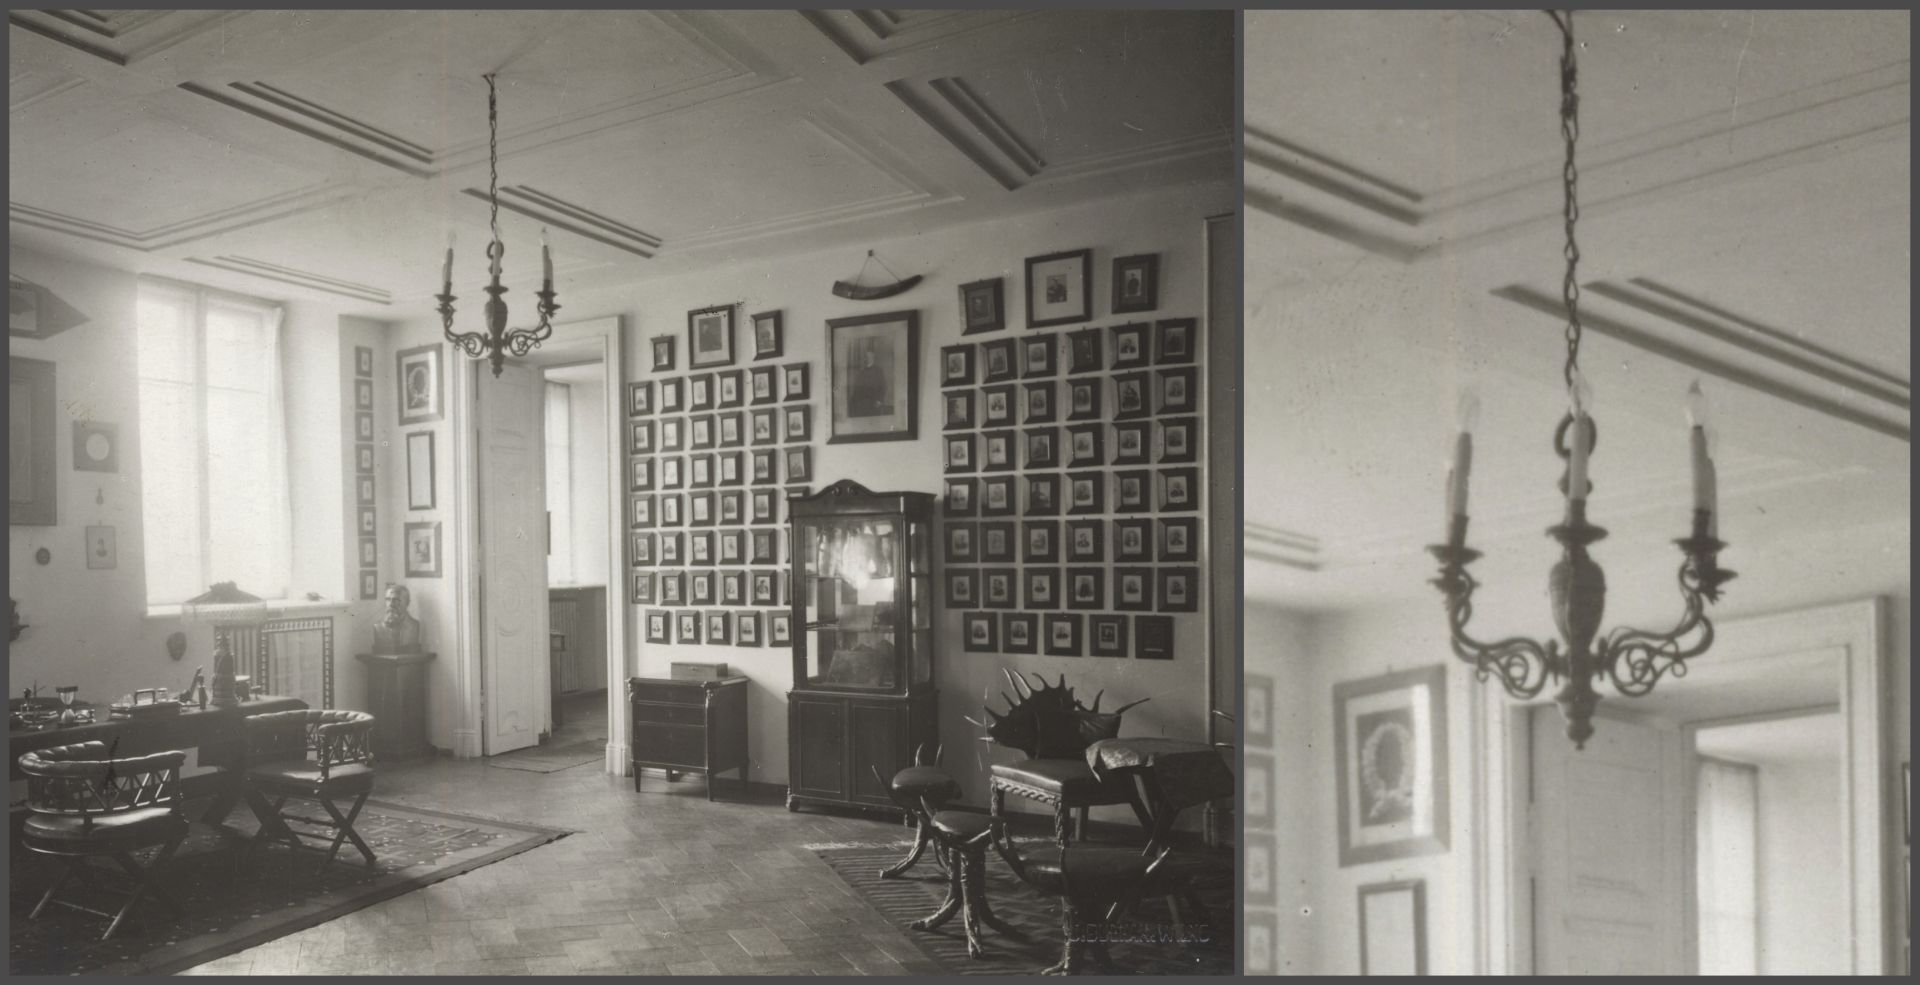 Tadeusz Wróblewski's office. Phot. Jan Bułhak, 1932, from: The Wroblewski  Library of the Lithuanian Academy of Sciences, Rare Books Department SFg-2402/4/22